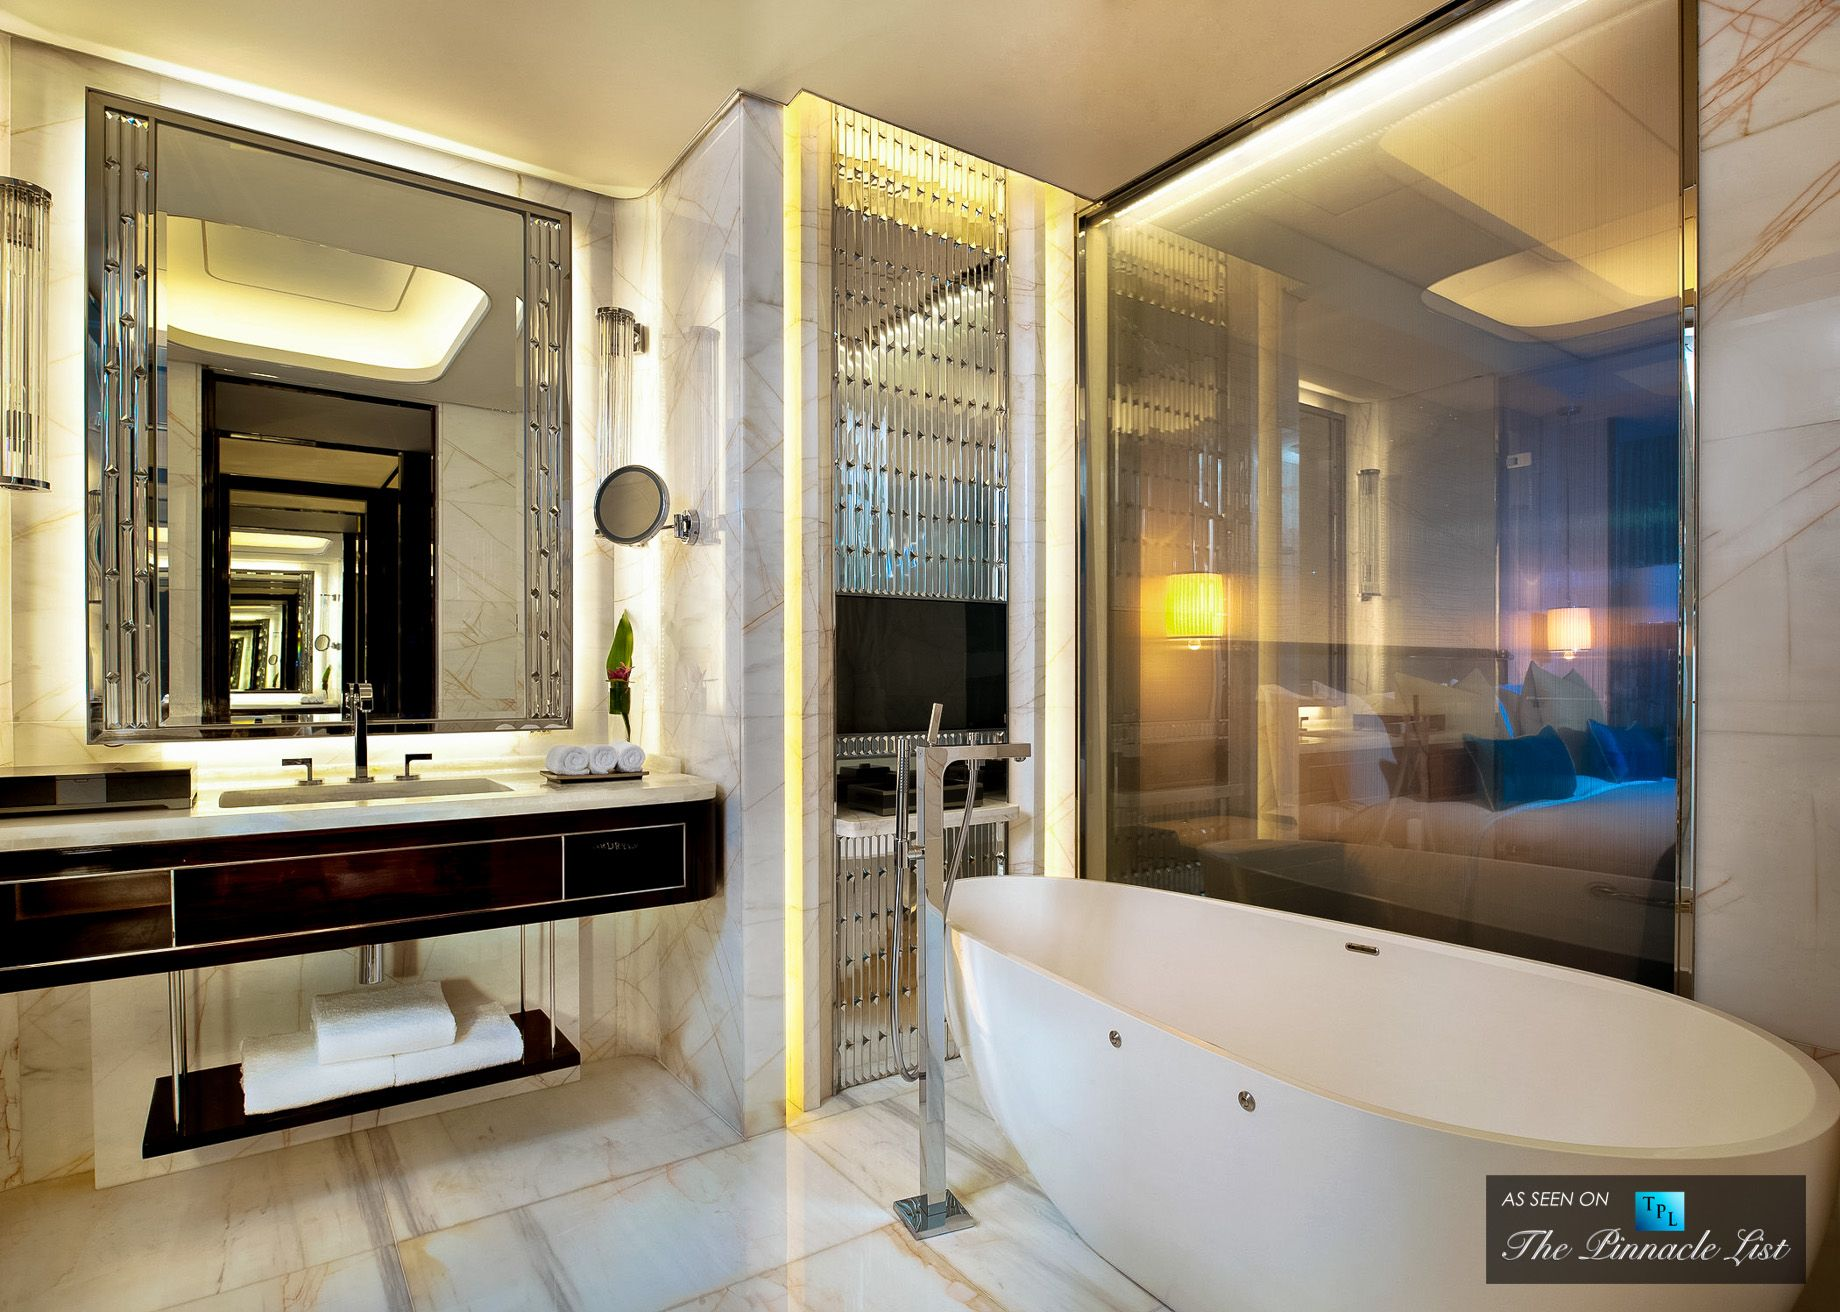 Luxury Bathrooms In Hotels st. regis luxury hotel - shenzhen, china - deluxe bathroom